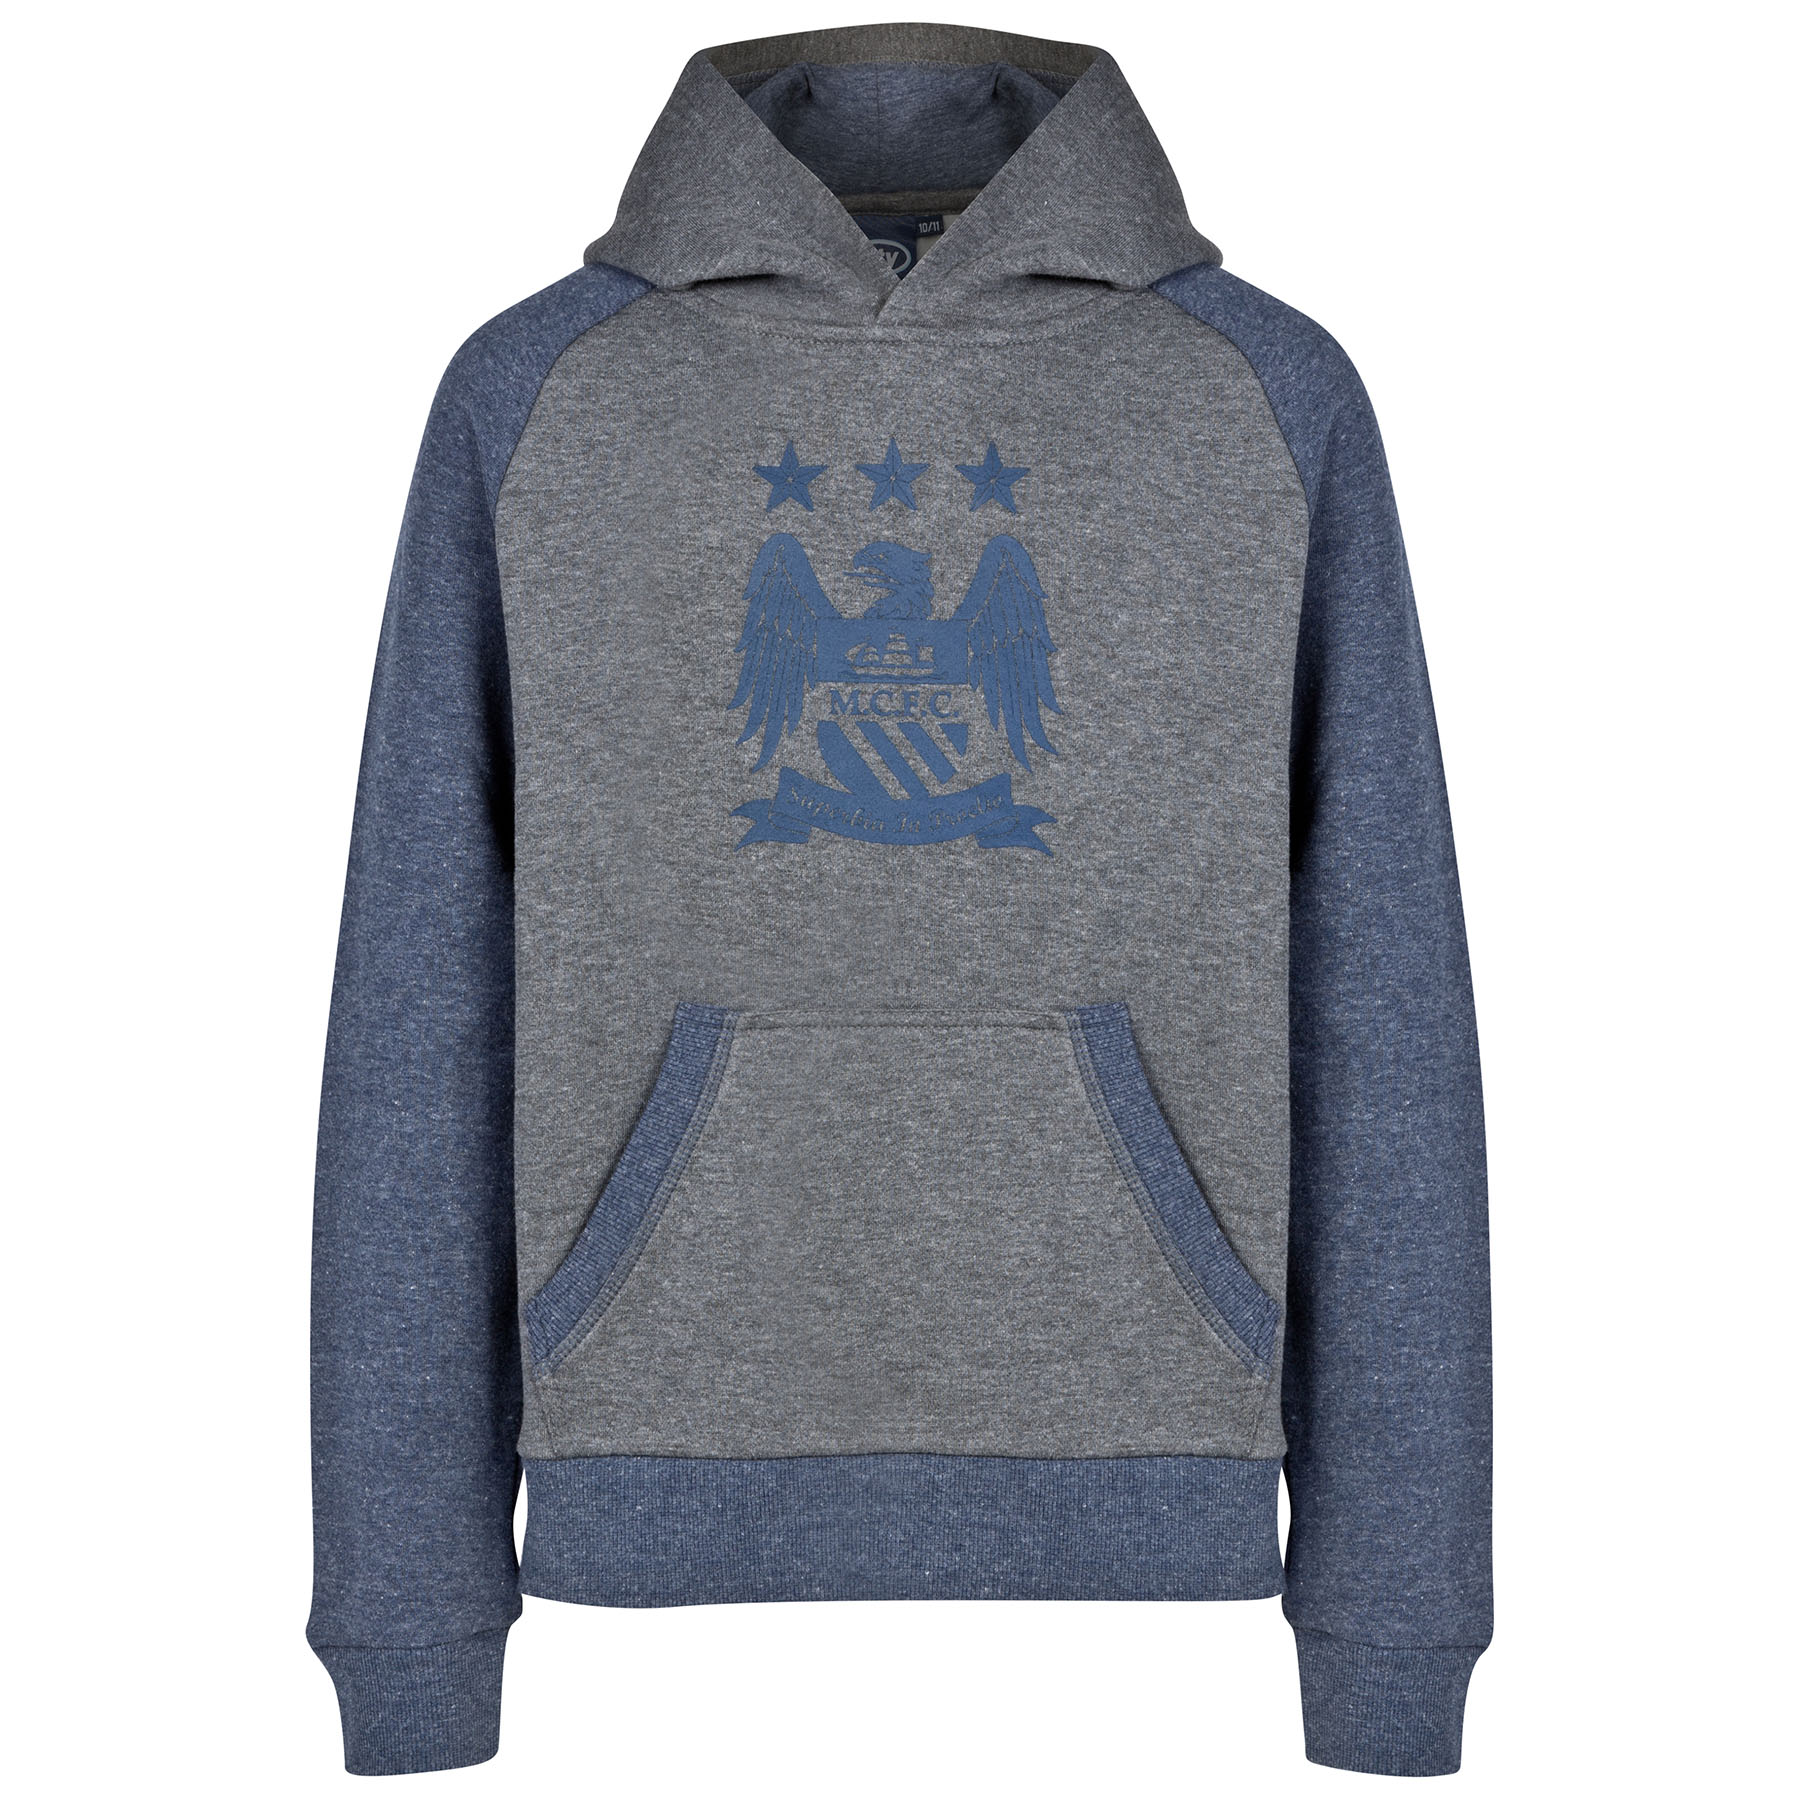 Manchester City Essential Hoodie - Heather Navy - Older Boys